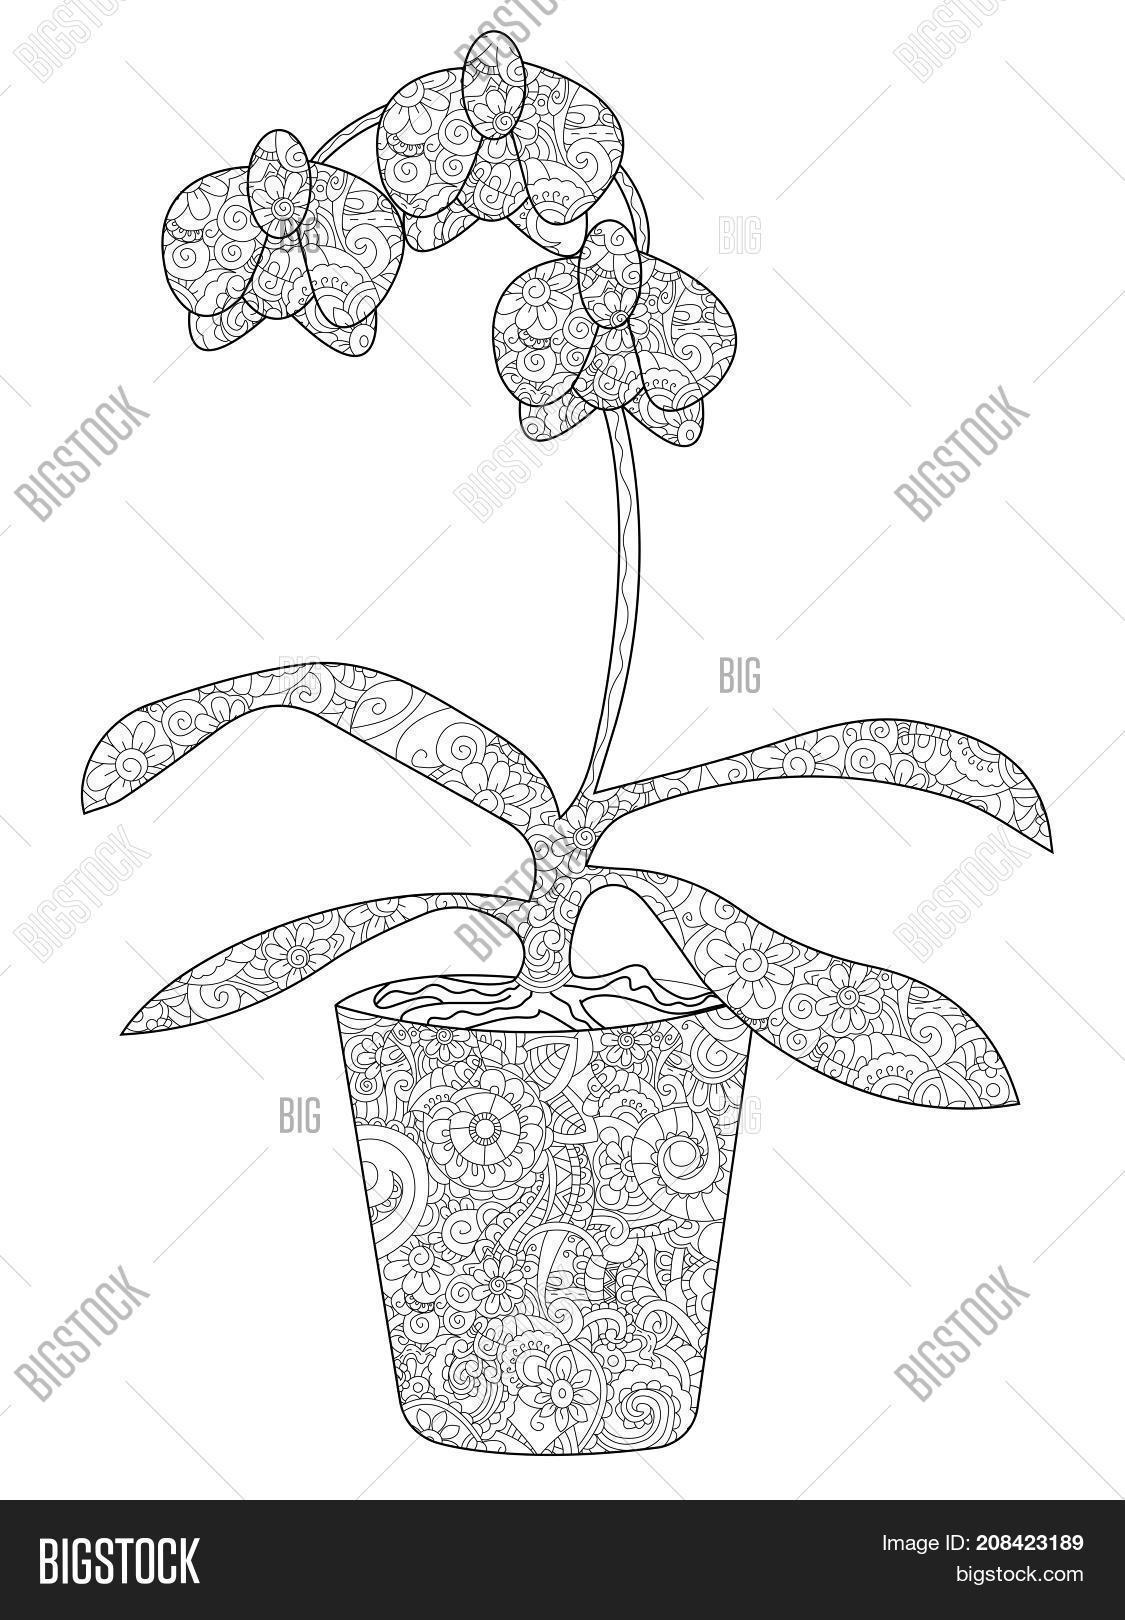 Flower Orchid In A Pot Coloring Book For Adults Raster Illustration Anti Stress